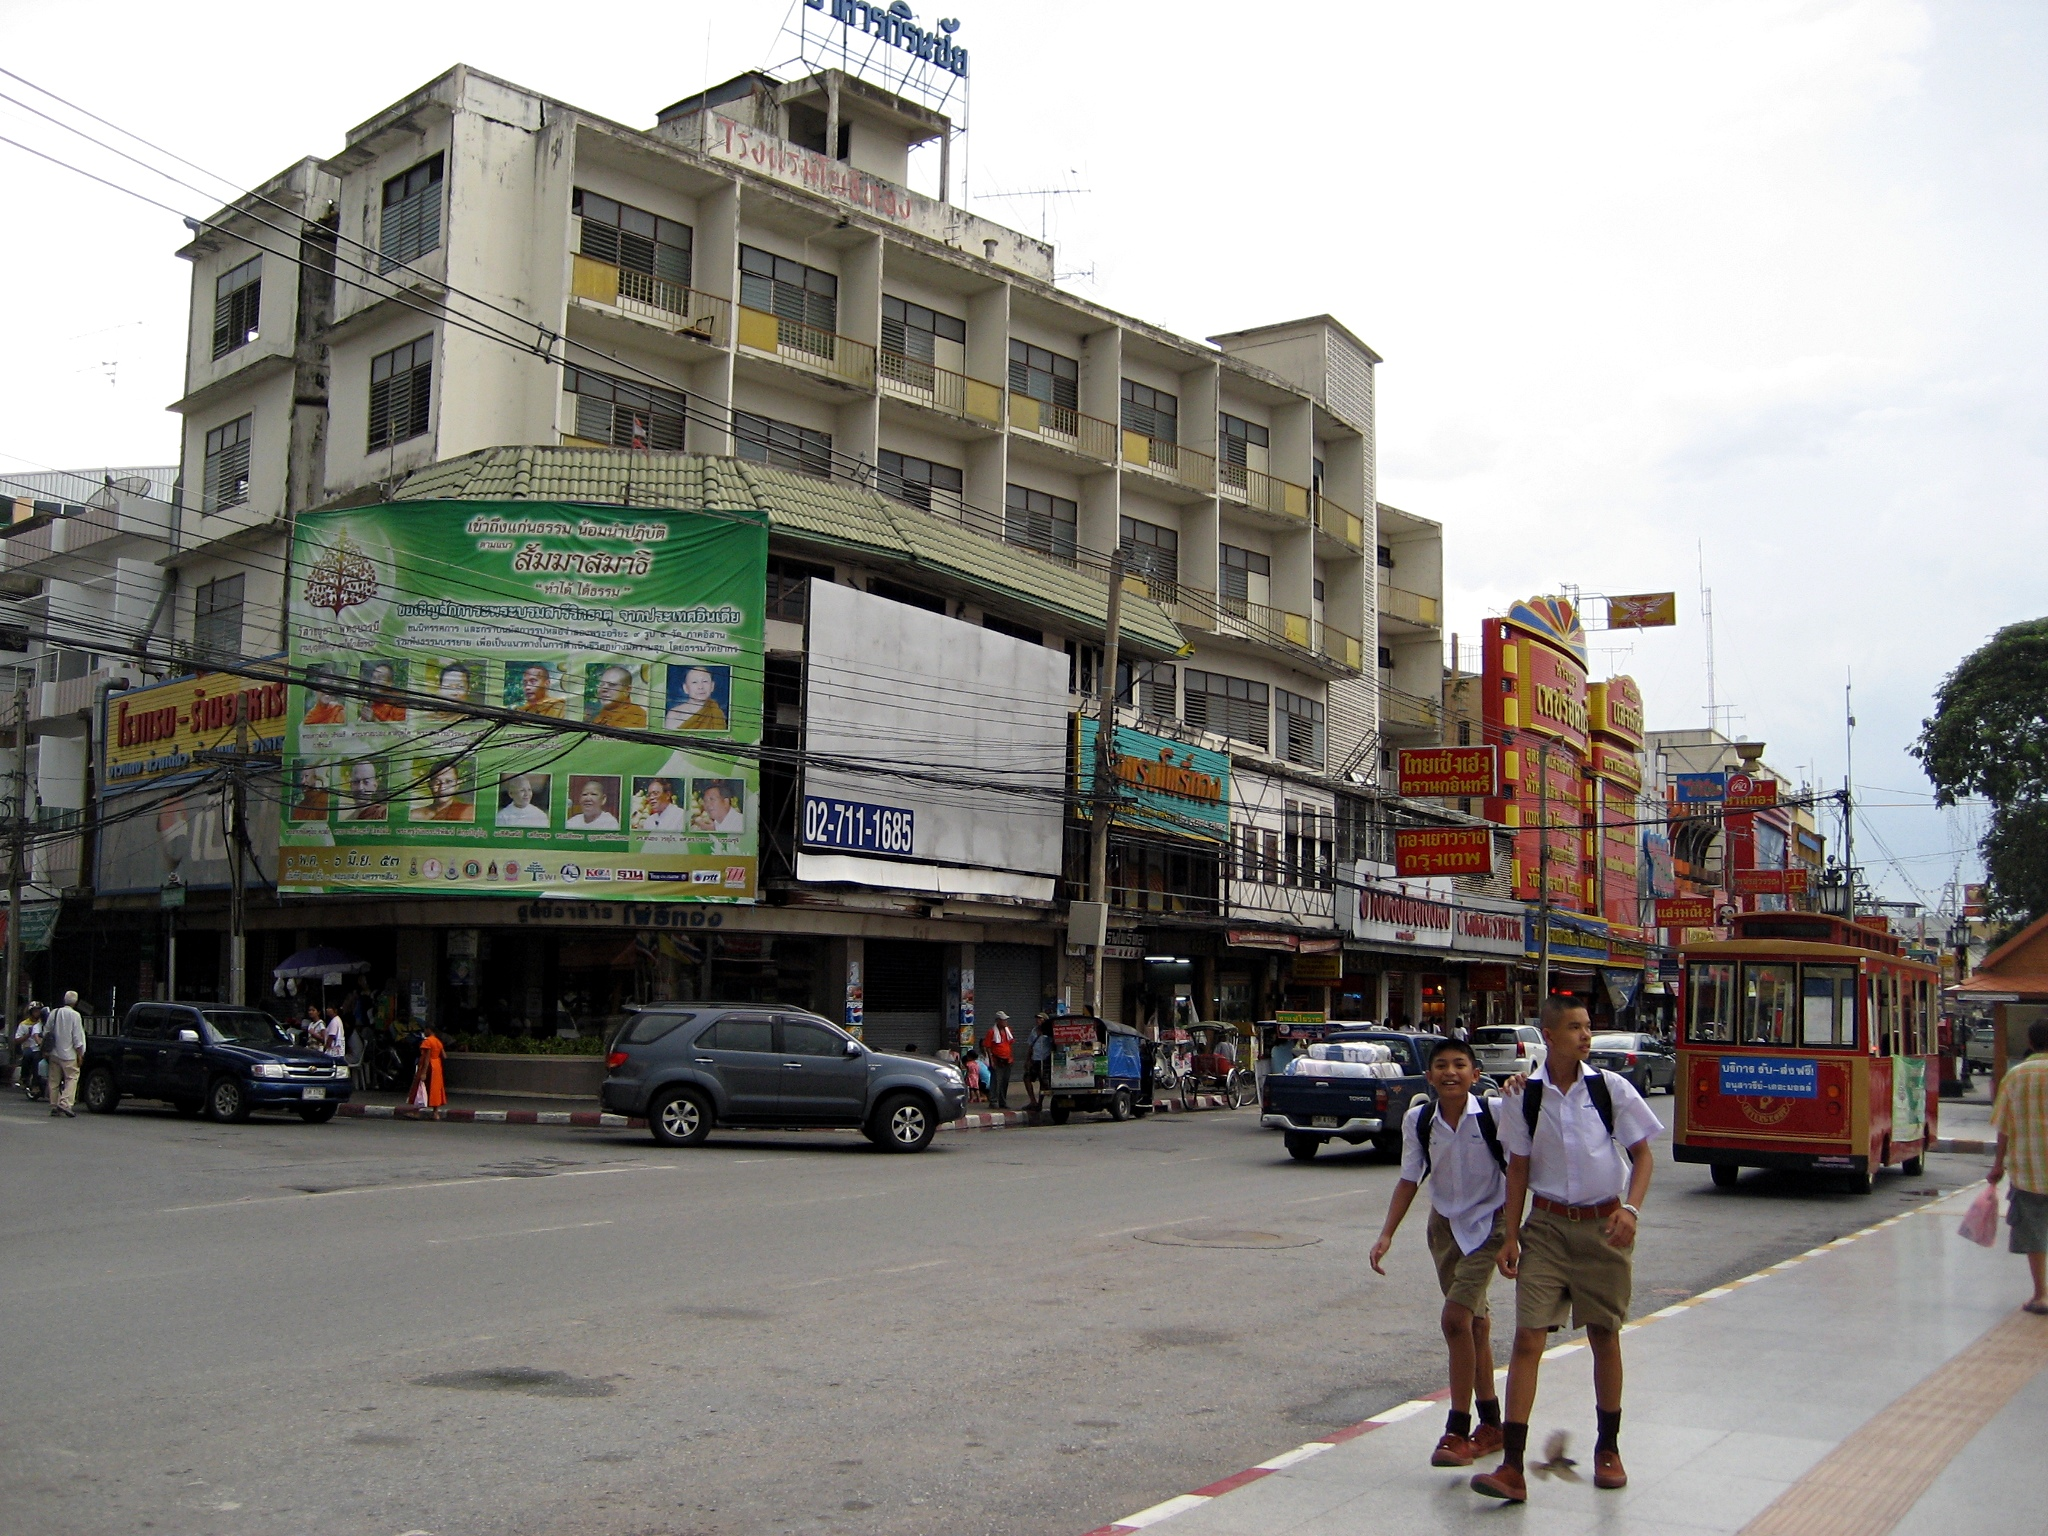 Nakhonratchasima Thailand  city pictures gallery : Nakhon Ratchasima Korat City Thailand Wikipedia, the free ...